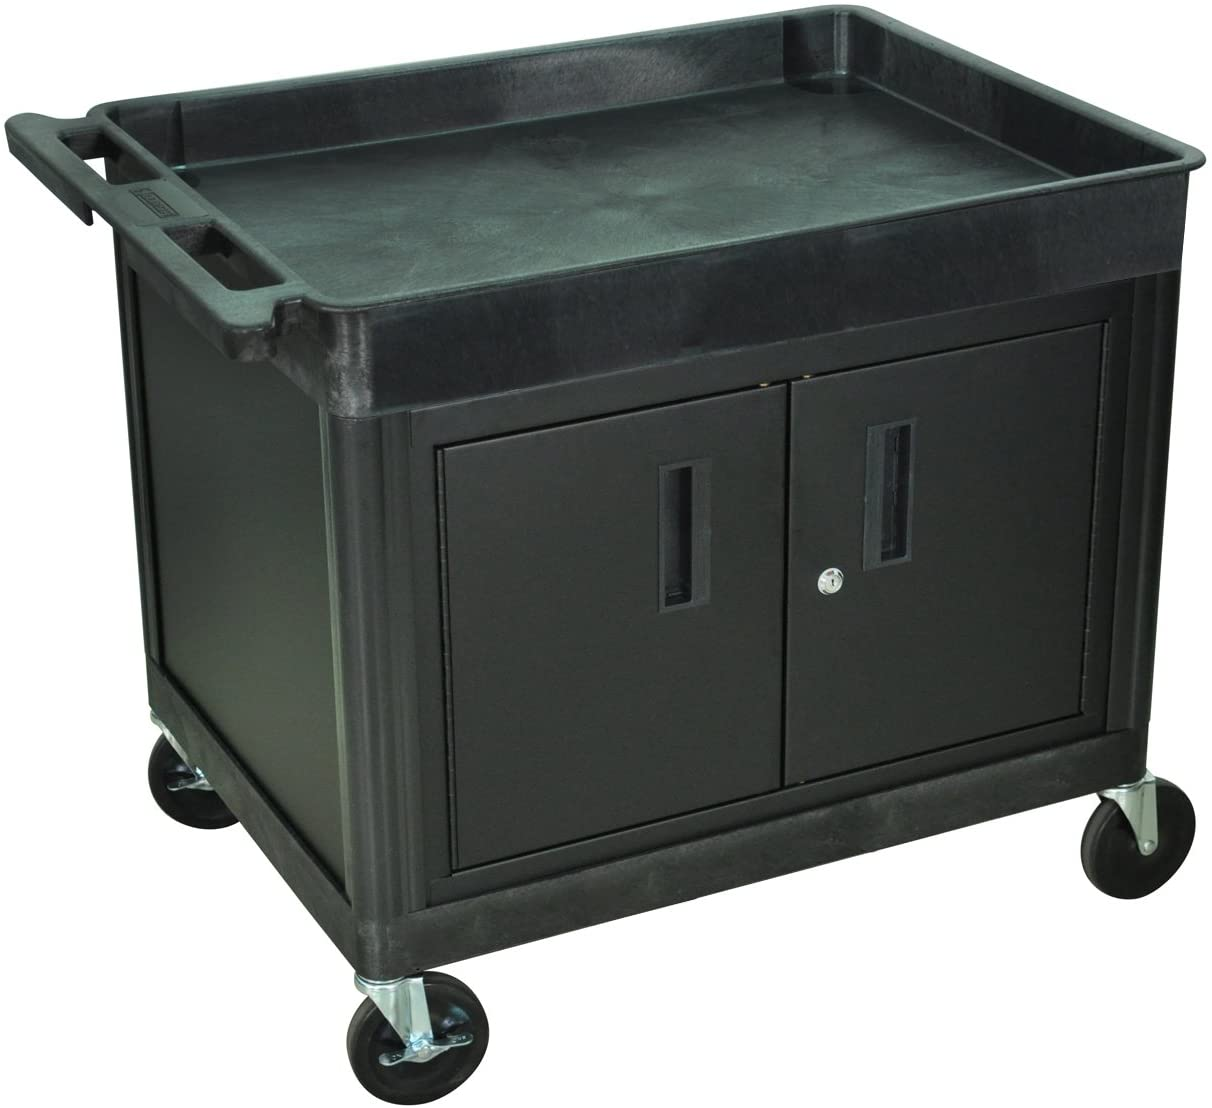 Offex Tub Top Shelf Multipurpose Rolling Utility Cart with Cabinet for Home, Office, Garage, Warehouse, Shops, Cafes- Green